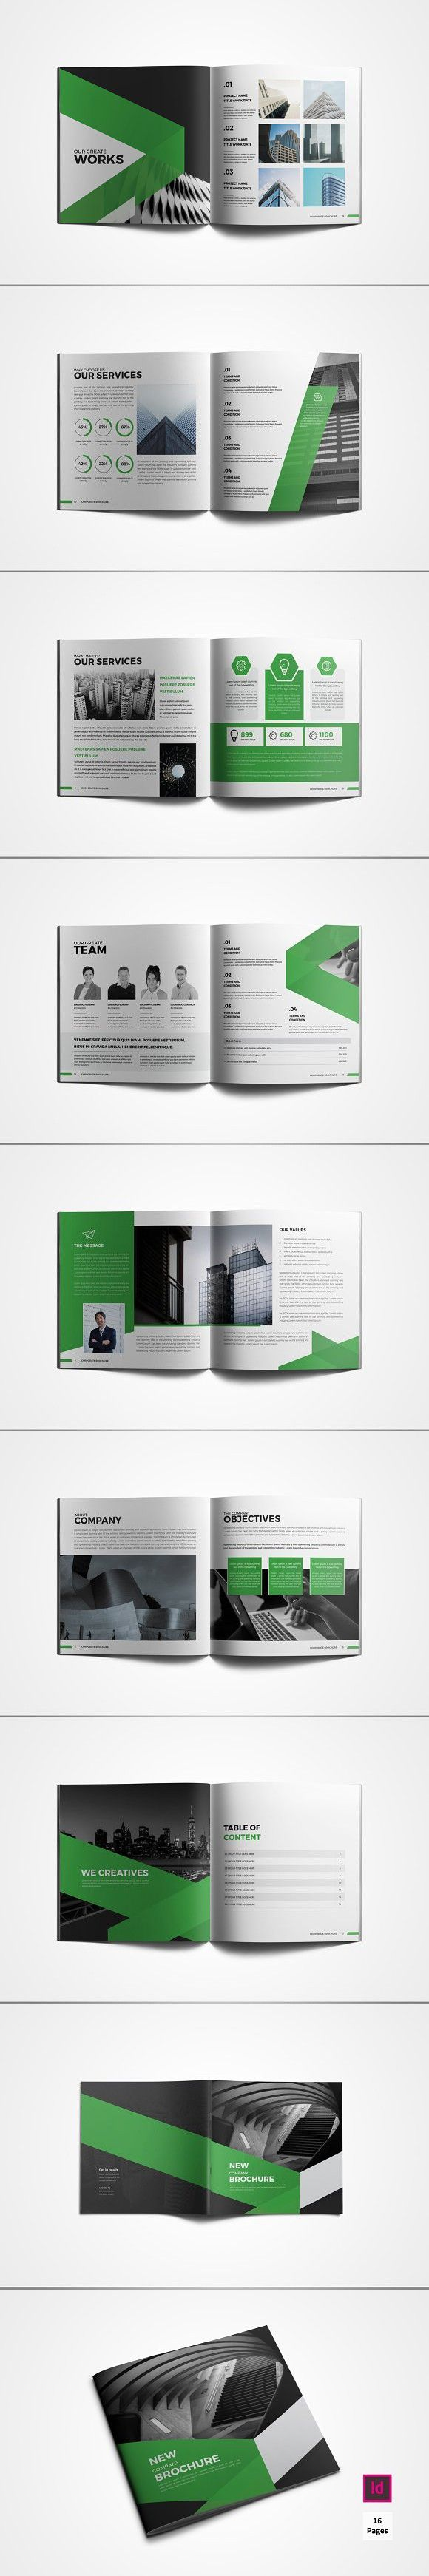 Square Company Profile Brochure